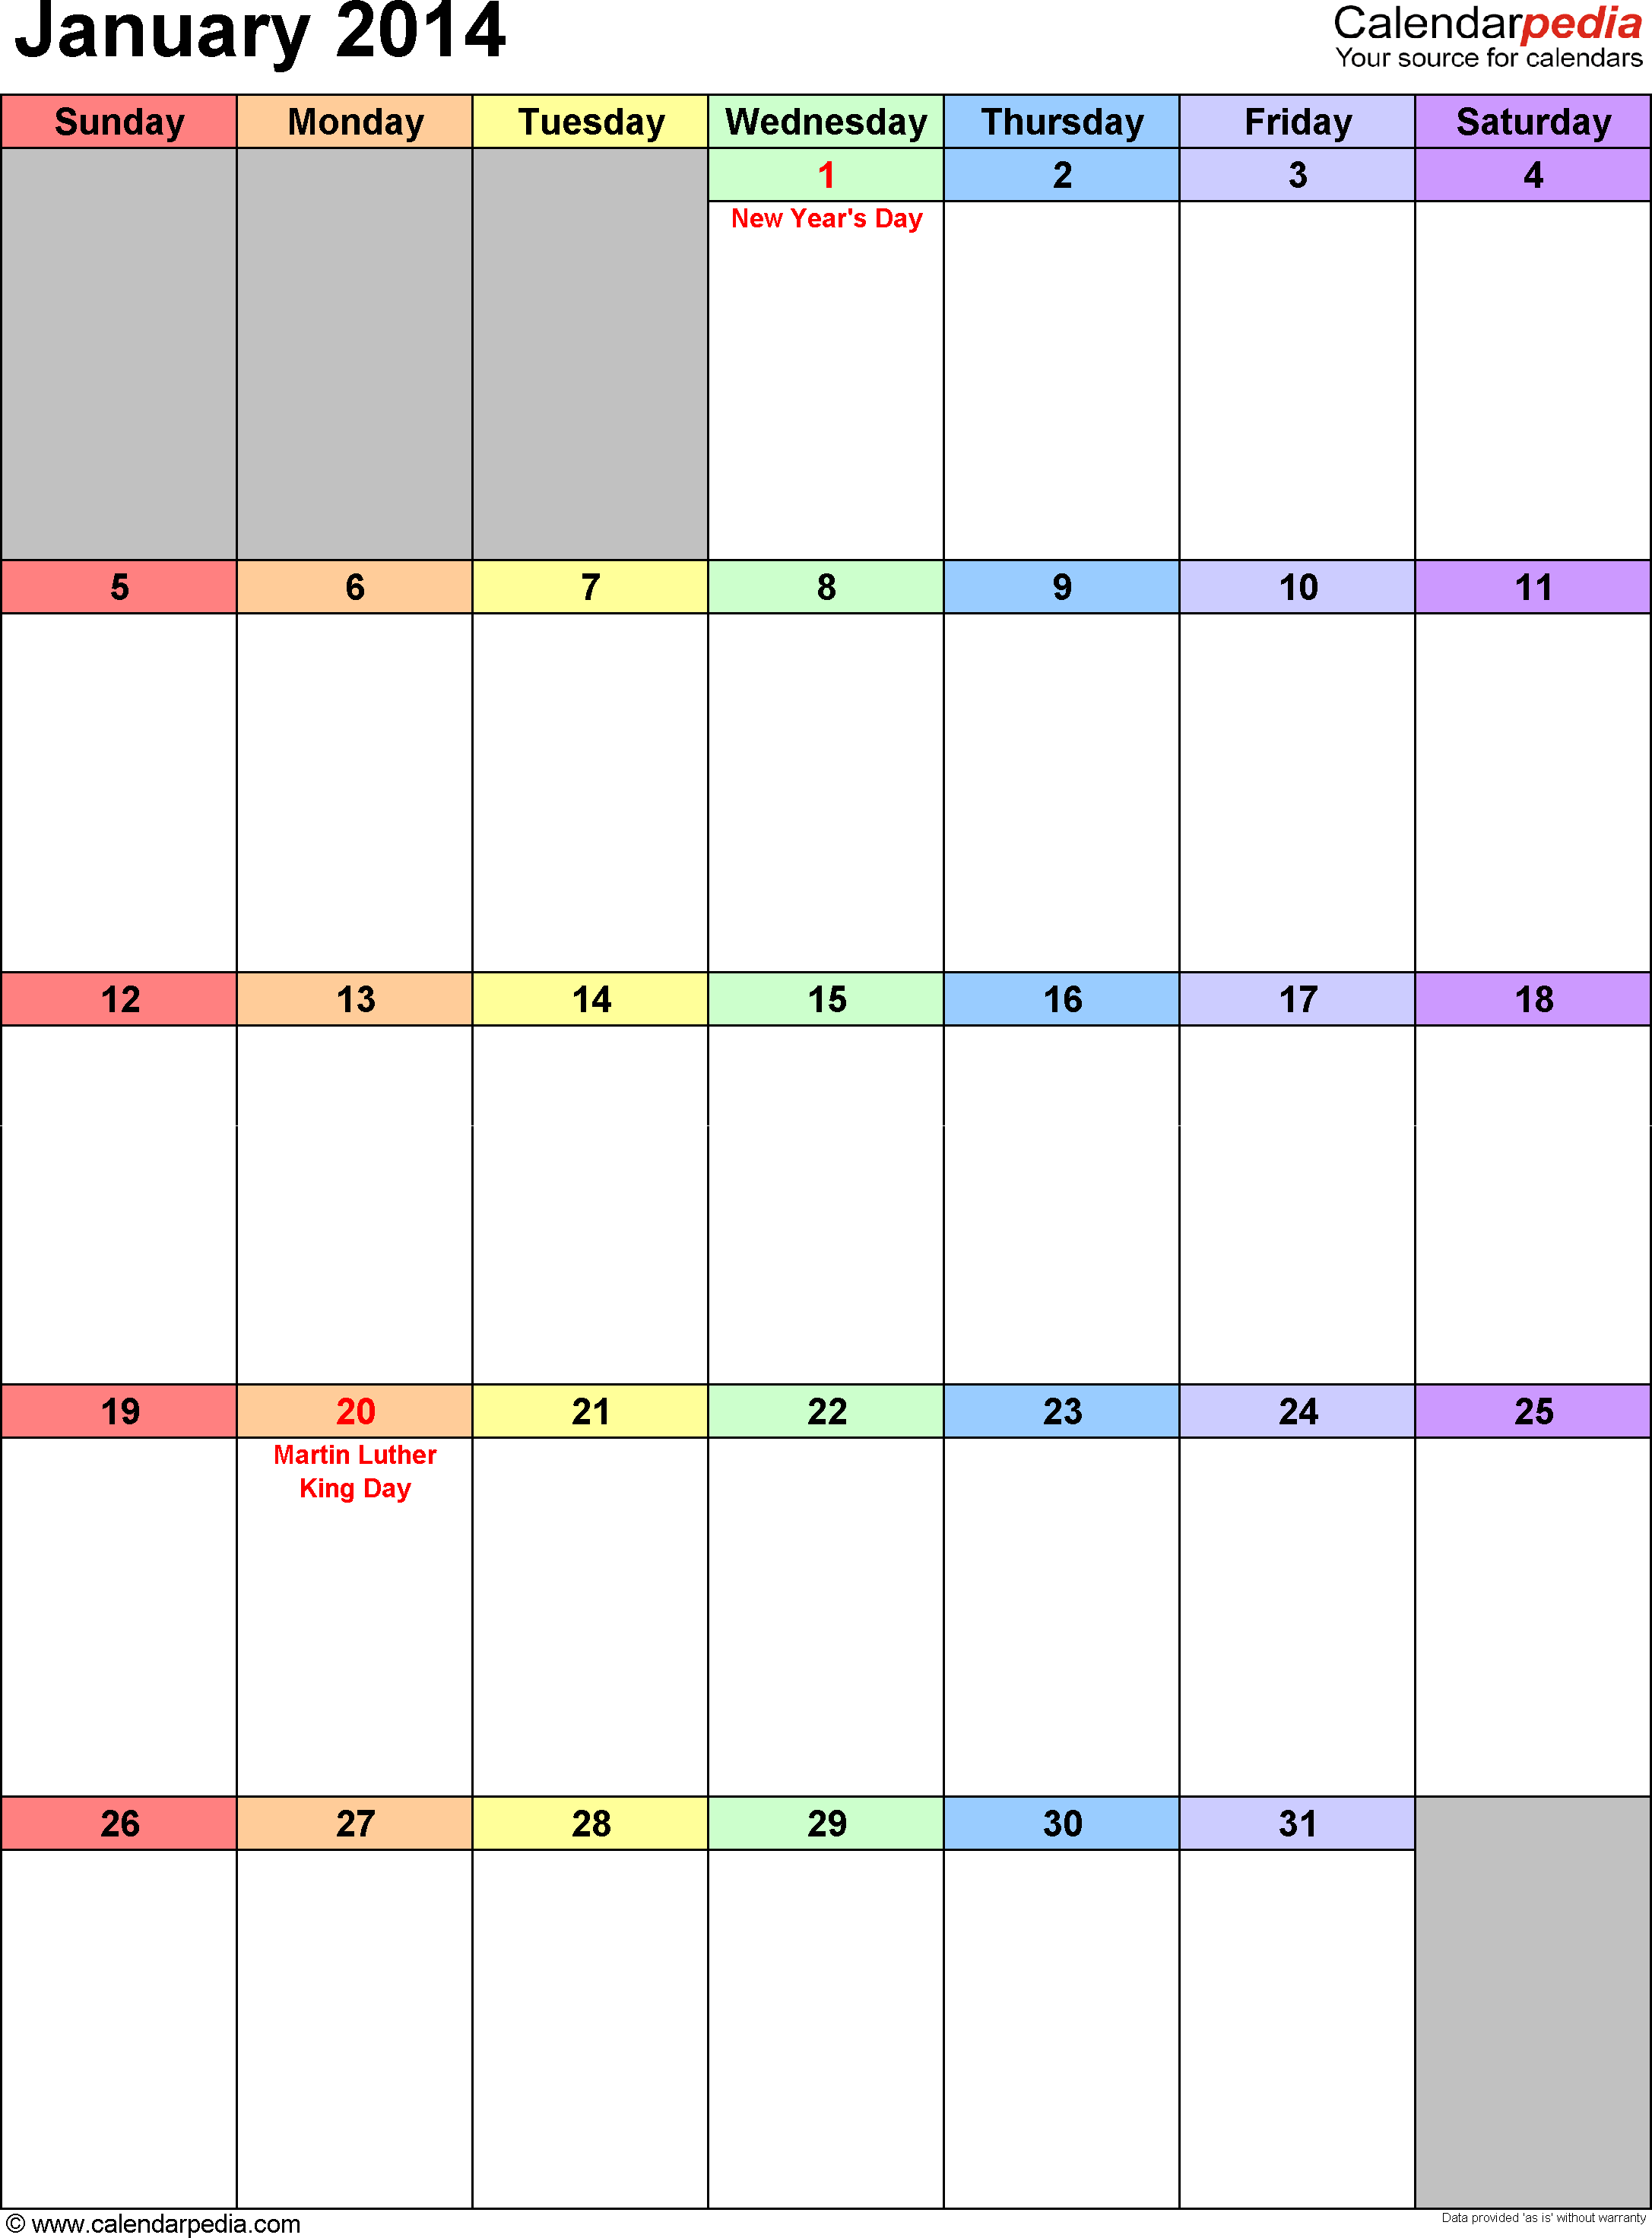 January 2014 calendar as printable Word, Excel & PDF templates